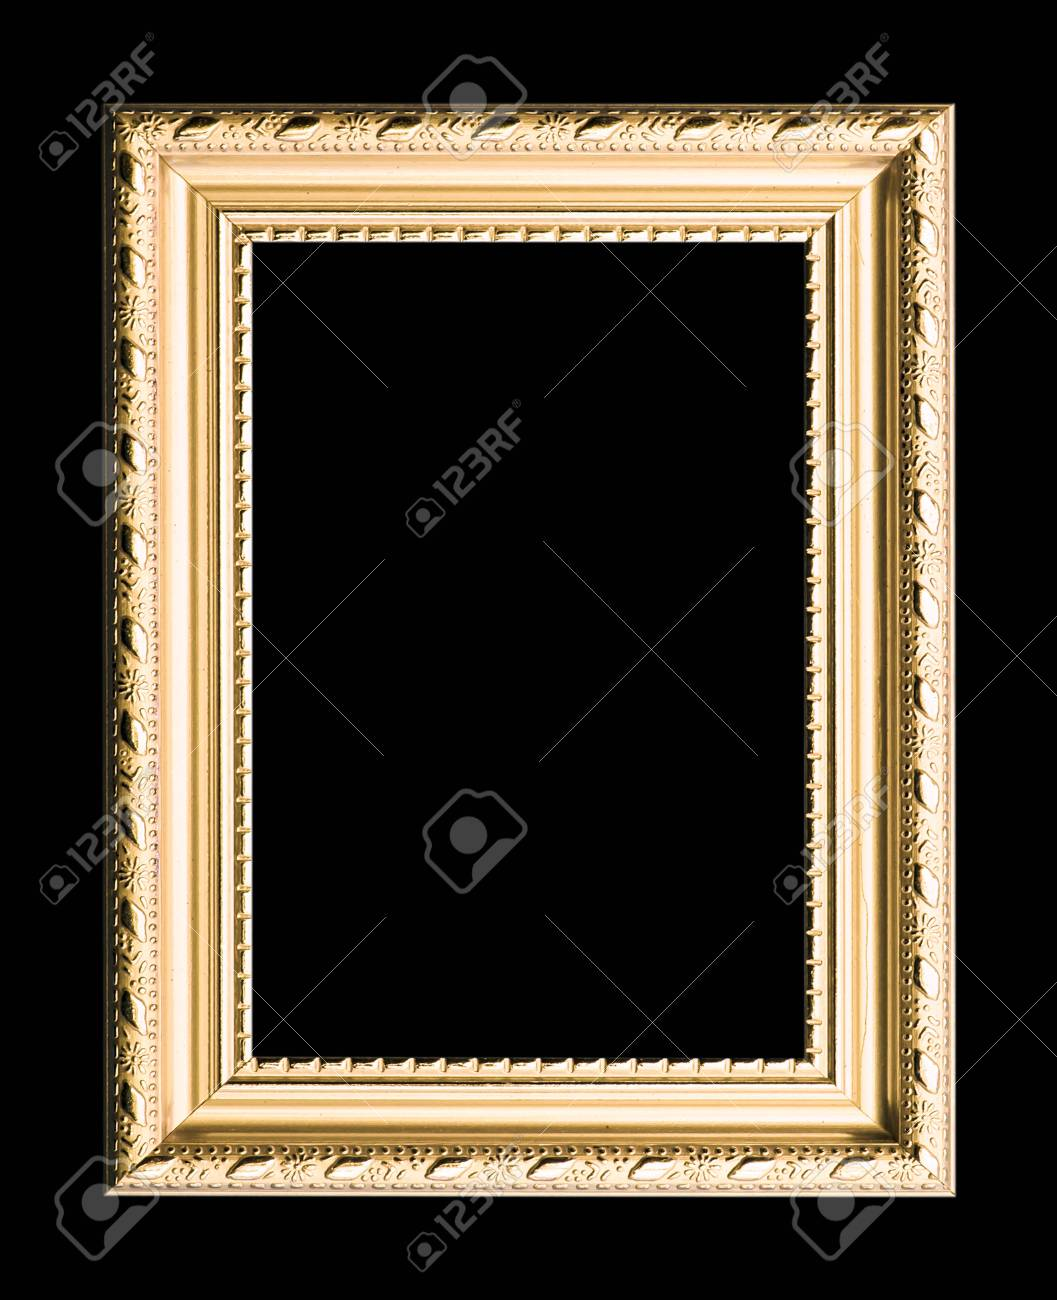 3538694647c wooden frame for painting or picture on black background Stock Photo -  72539751